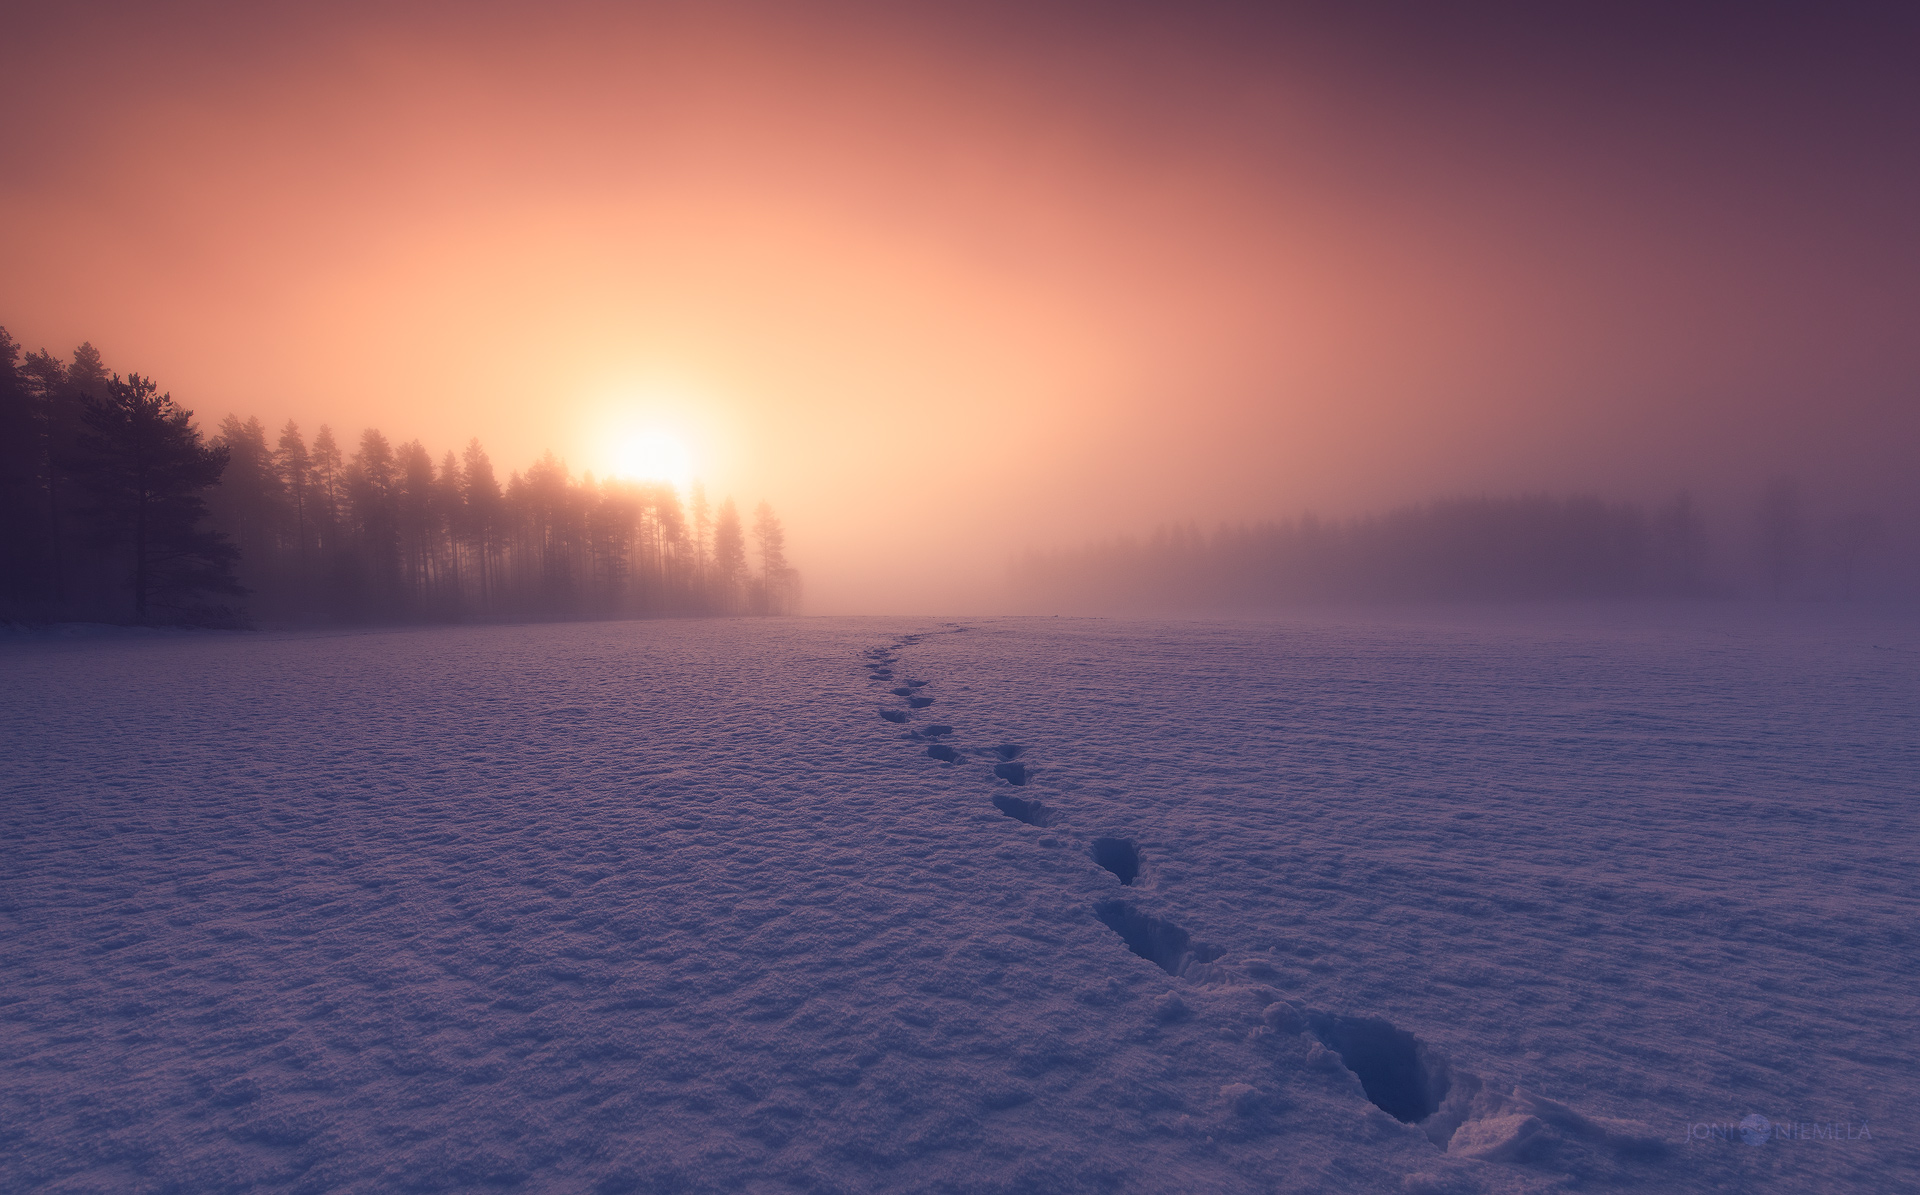 Footprints In The Mist